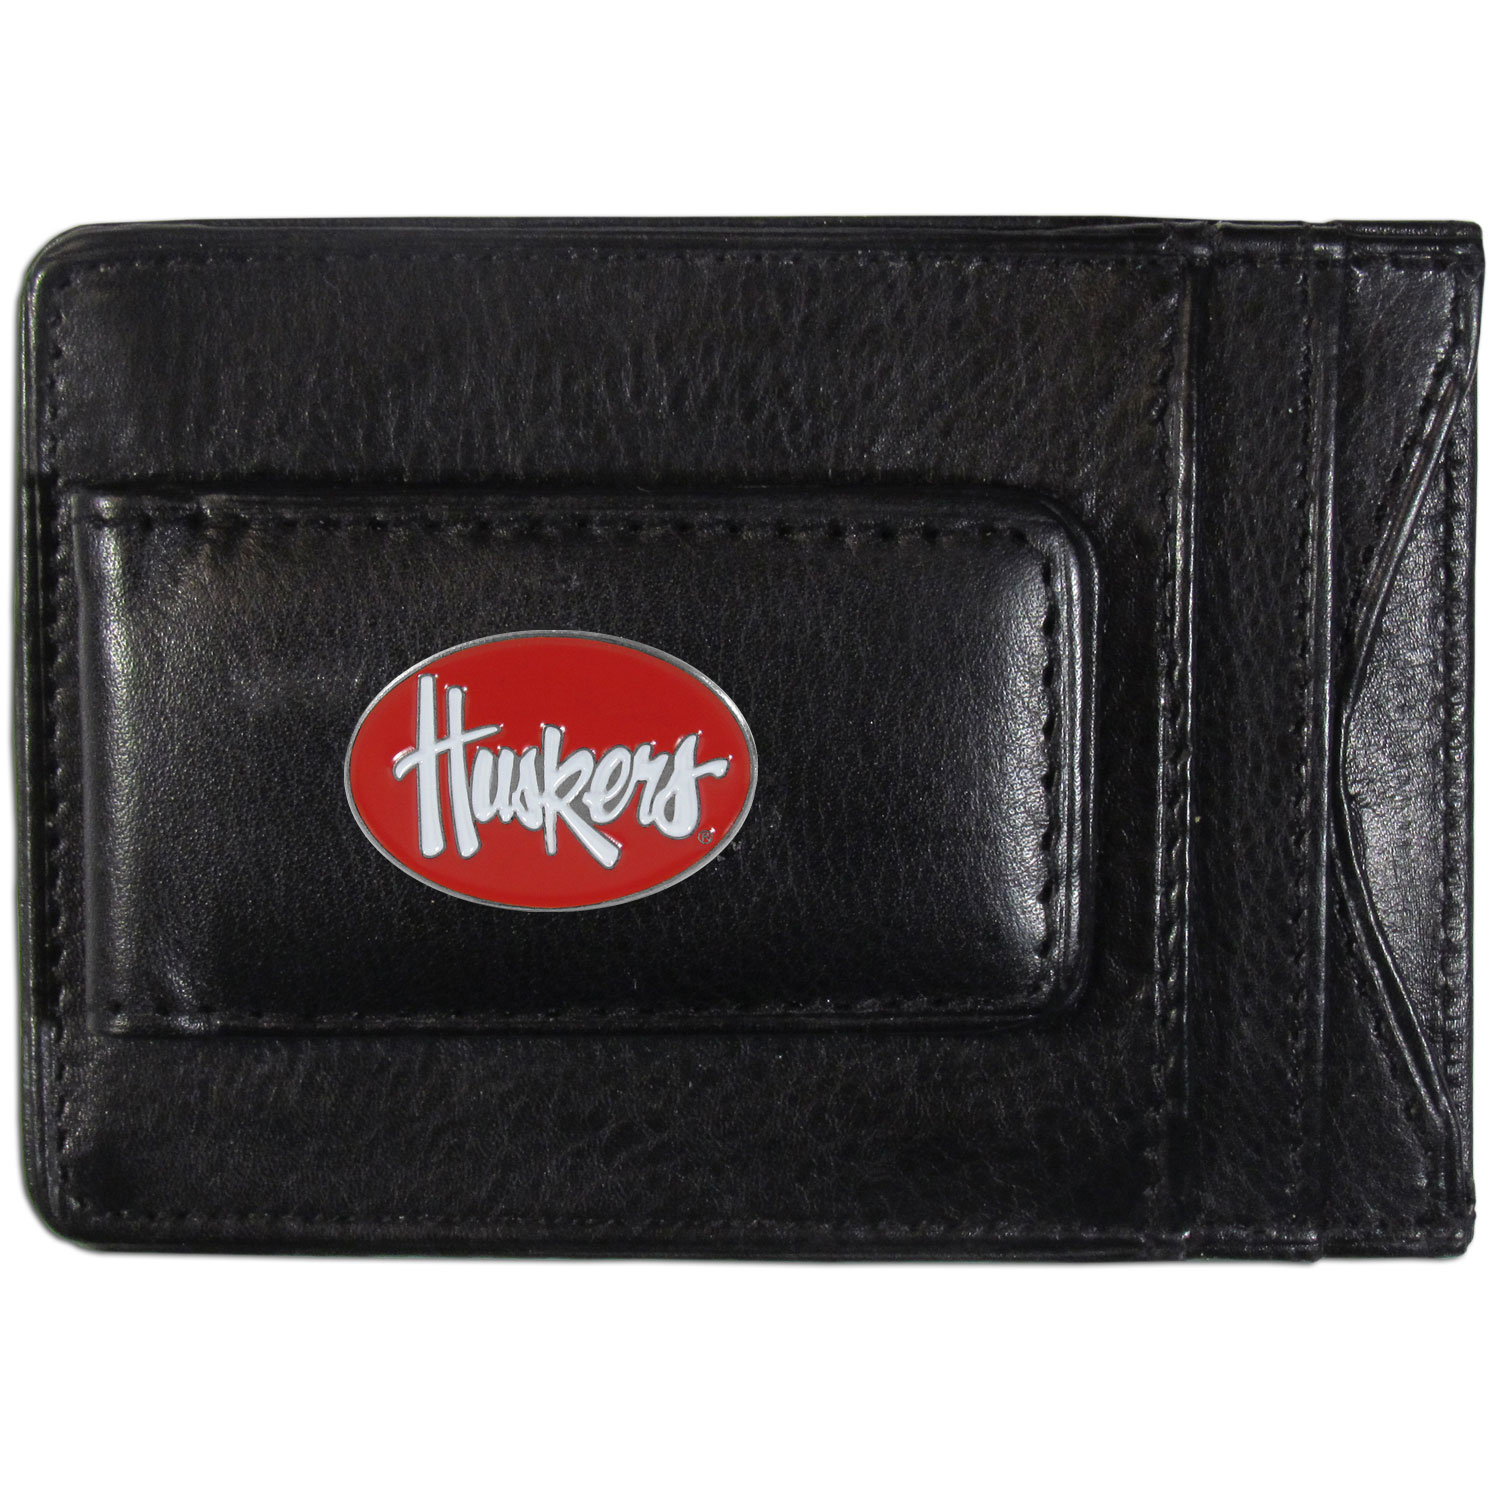 Nebraska Cornhuskers Leather Cash & Cardholder - Our Nebraska Cornhuskers genuine leather cash & cardholder is a great alternative to the traditional bulky wallet. This compact wallet has credit card slots, windowed ID slot and a magnetic money clip that will not damage your credit cards. The wallet features a metal team emblem.